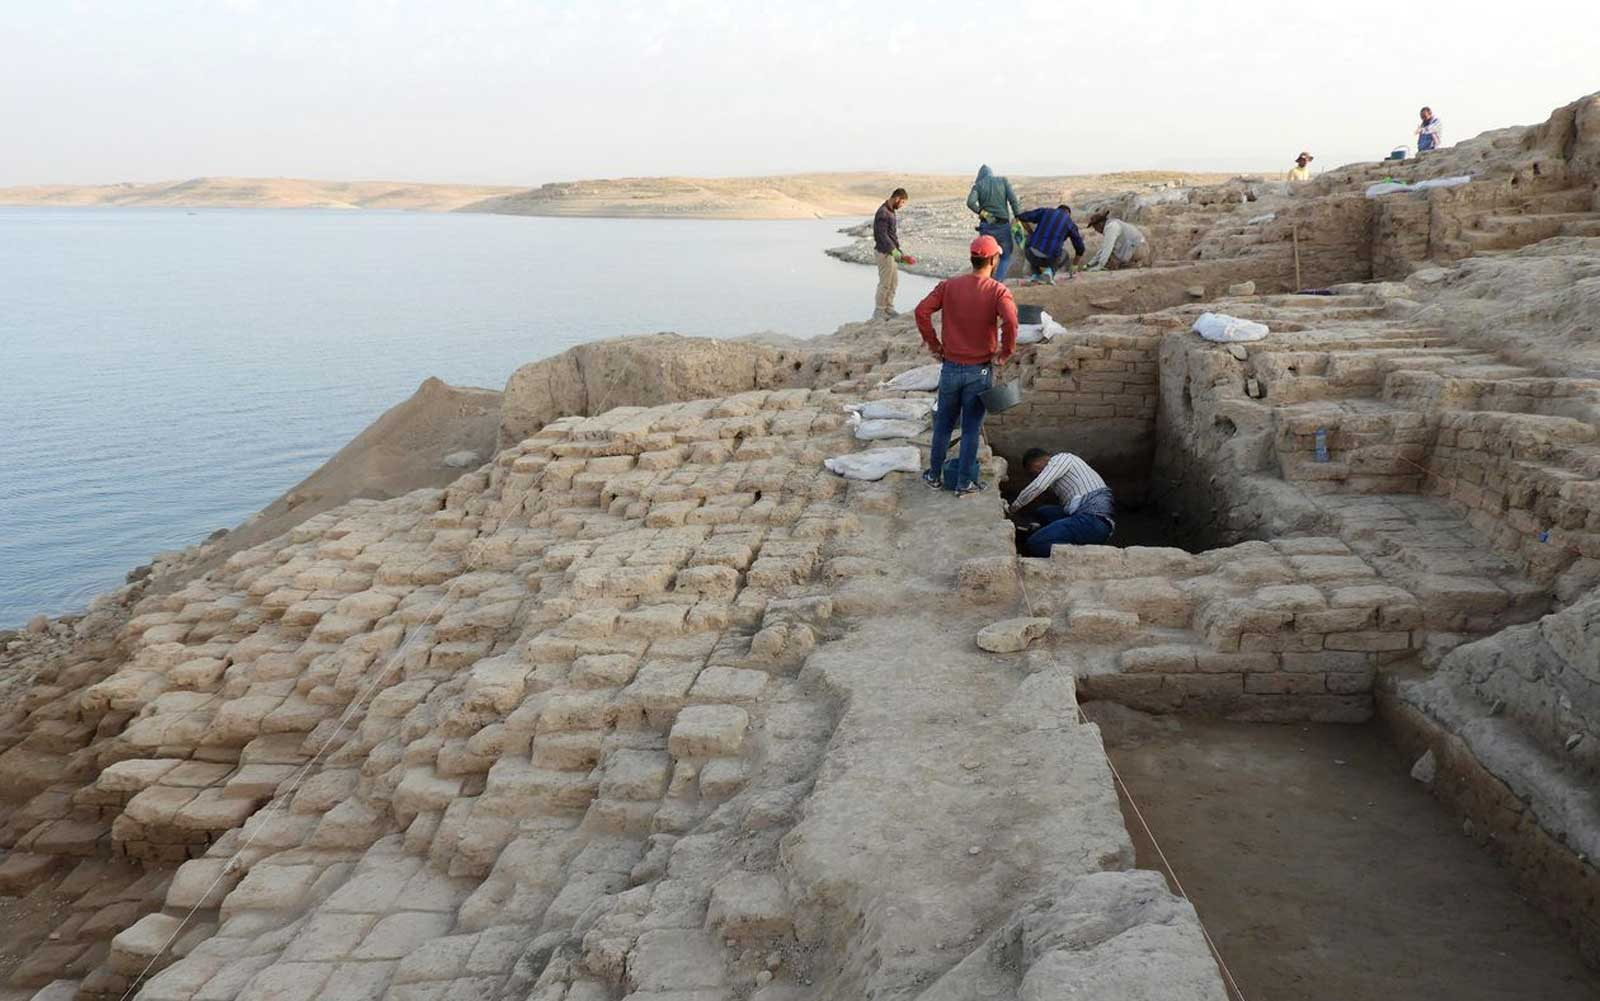 Archaeologists uncover palace of the Mittani Empire in the Duhok province of the Kurdistan Region/ Iraq